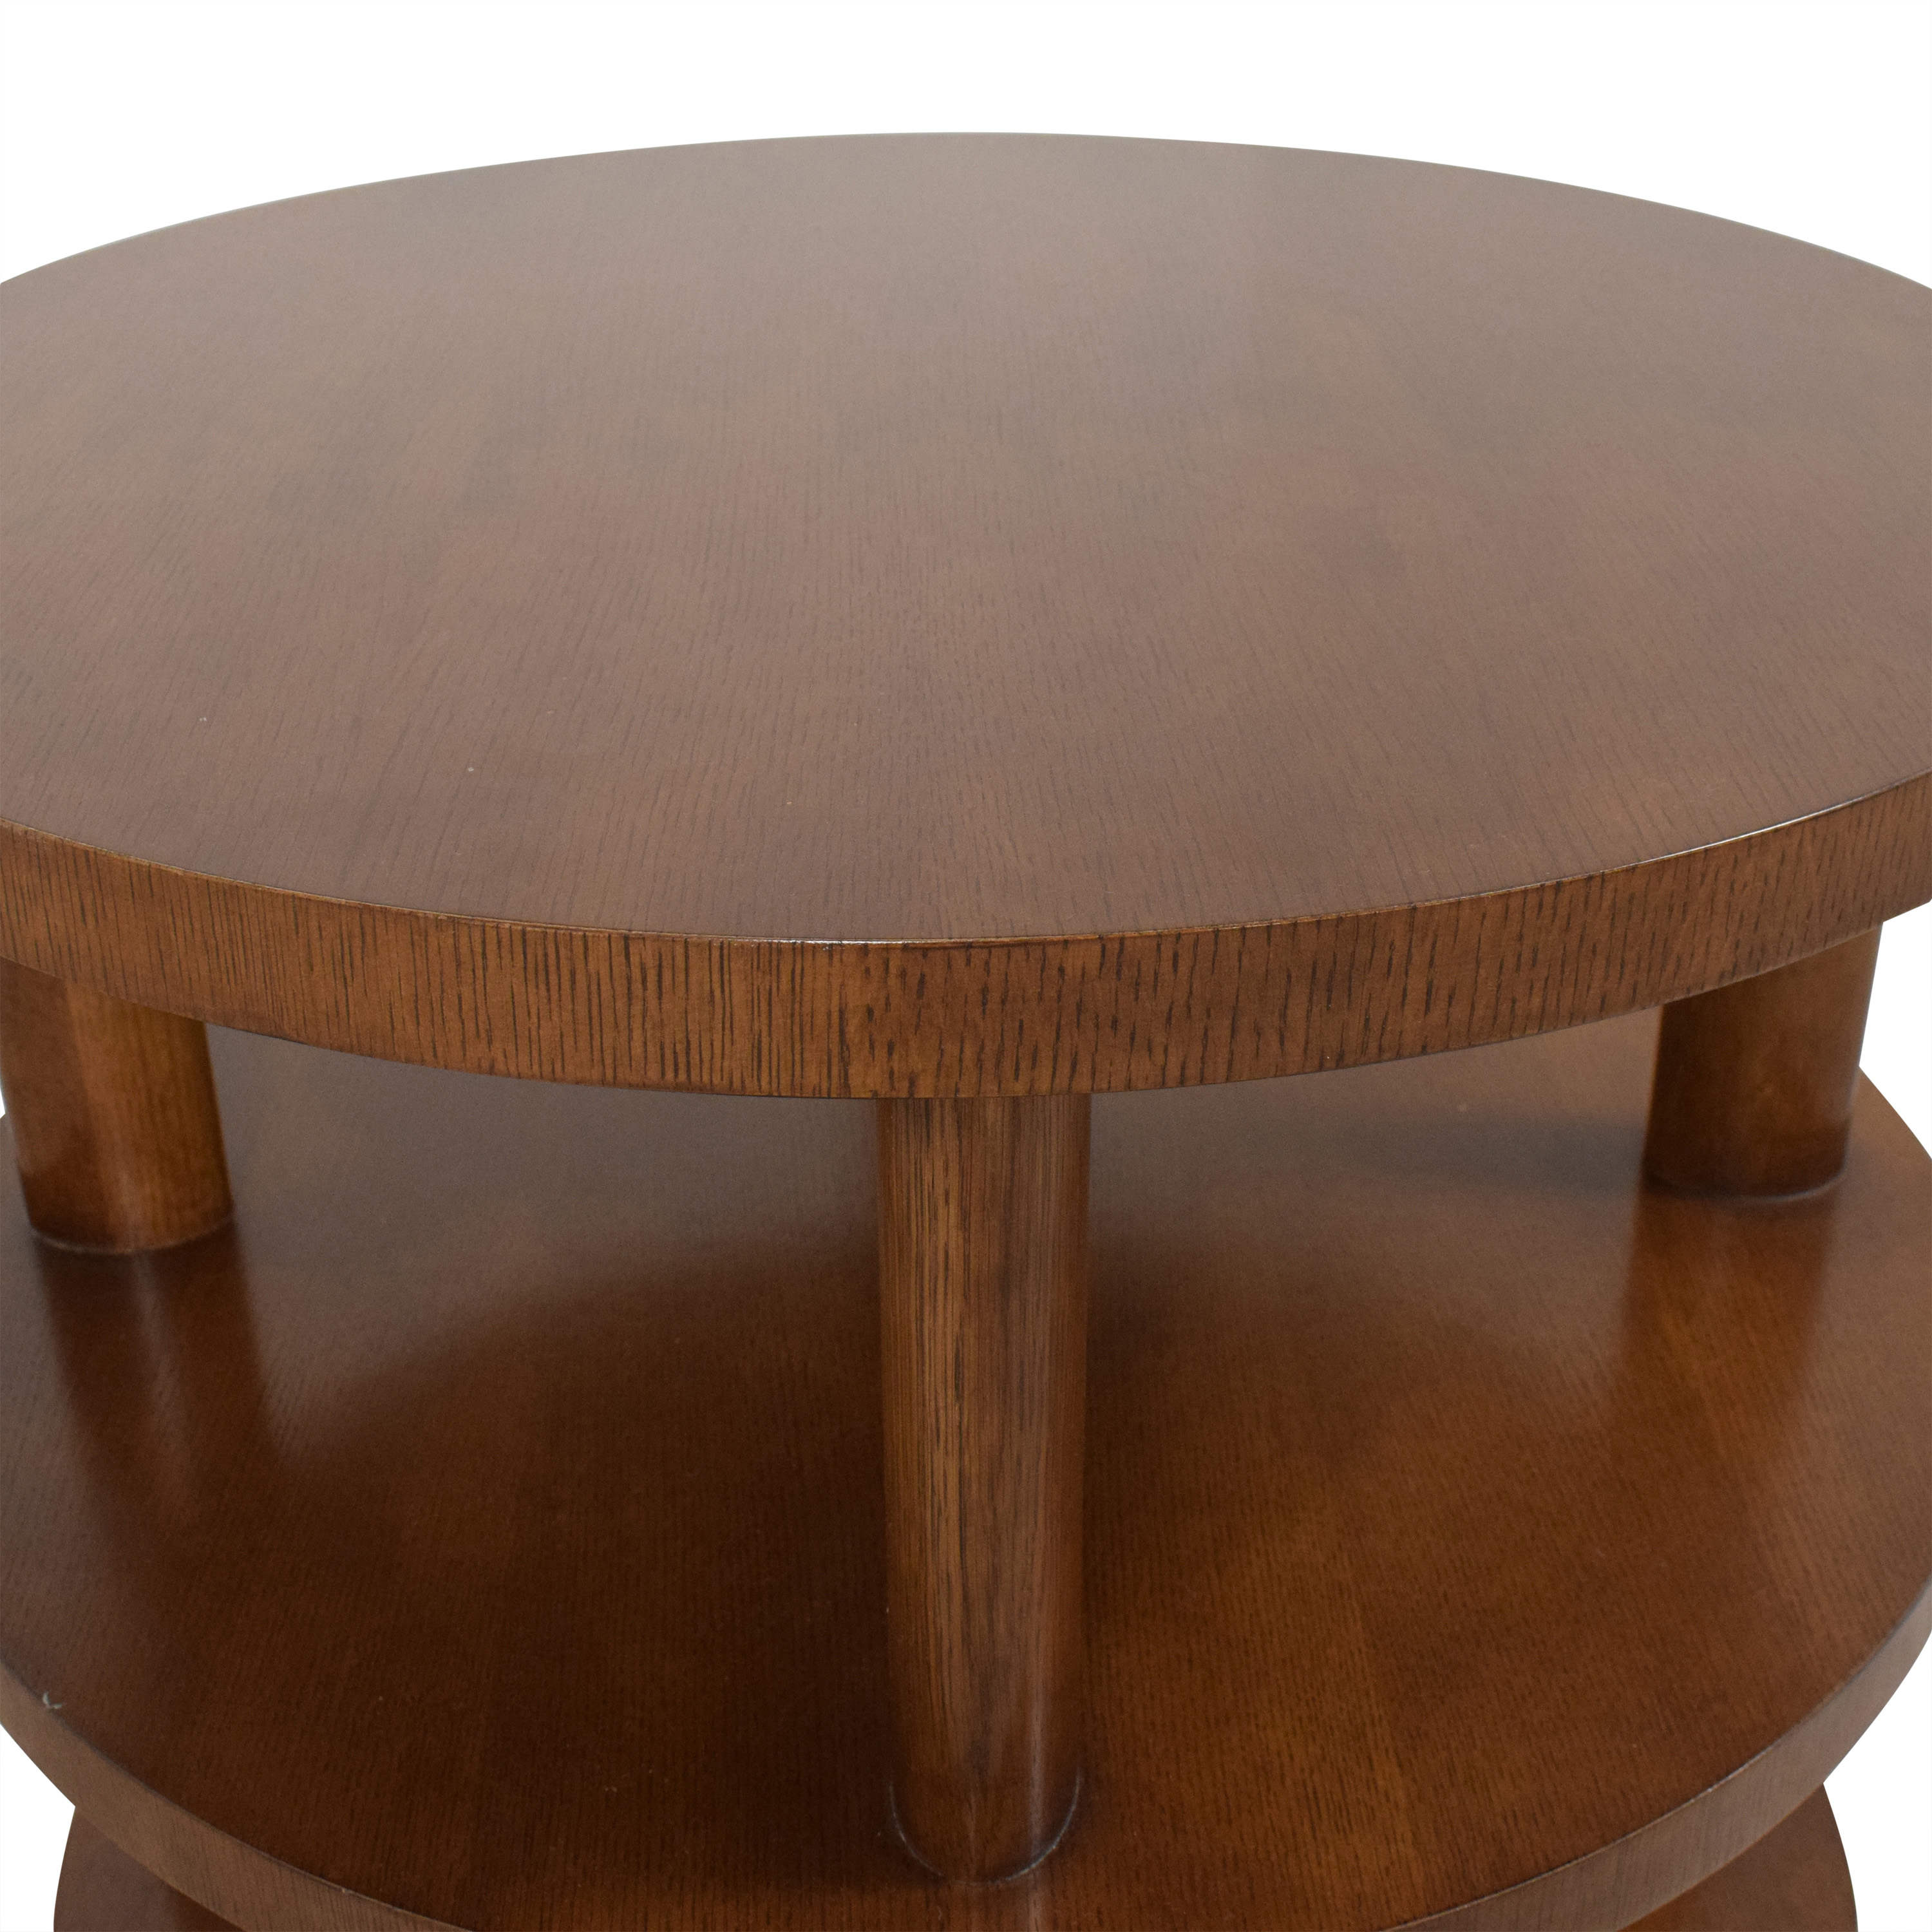 Baker Furniture Barbara Barry Round Tiered Occasional Table sale